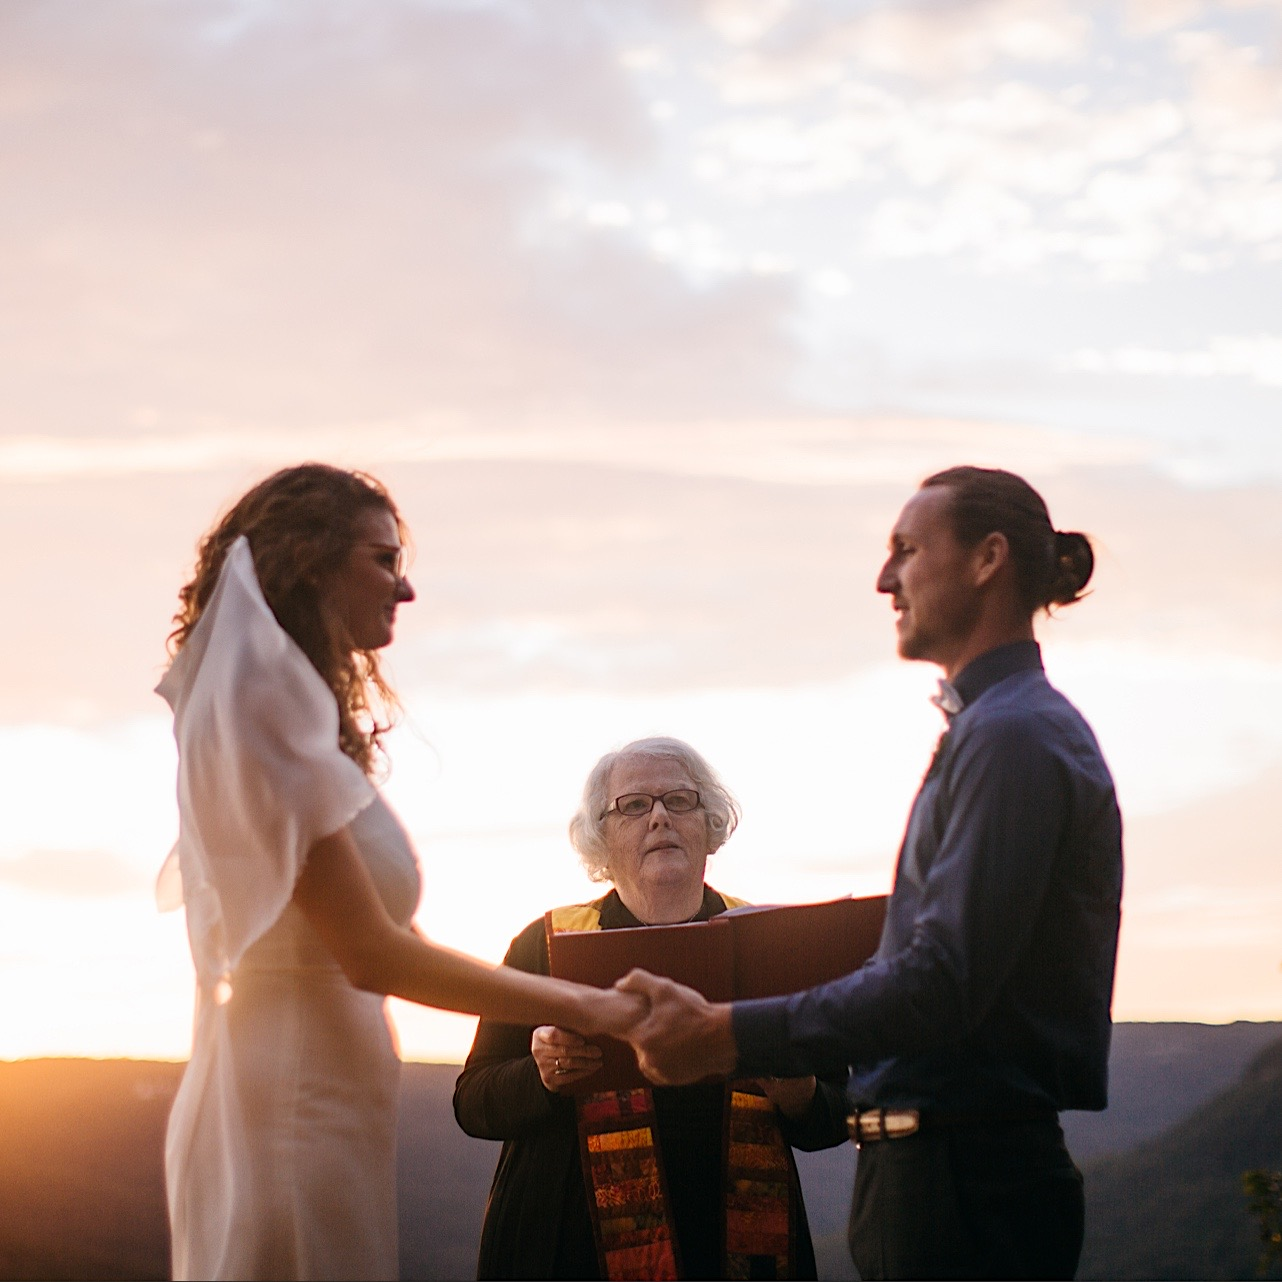 bride and groom say their vows during their sunrise elopement at Snooper's Rock